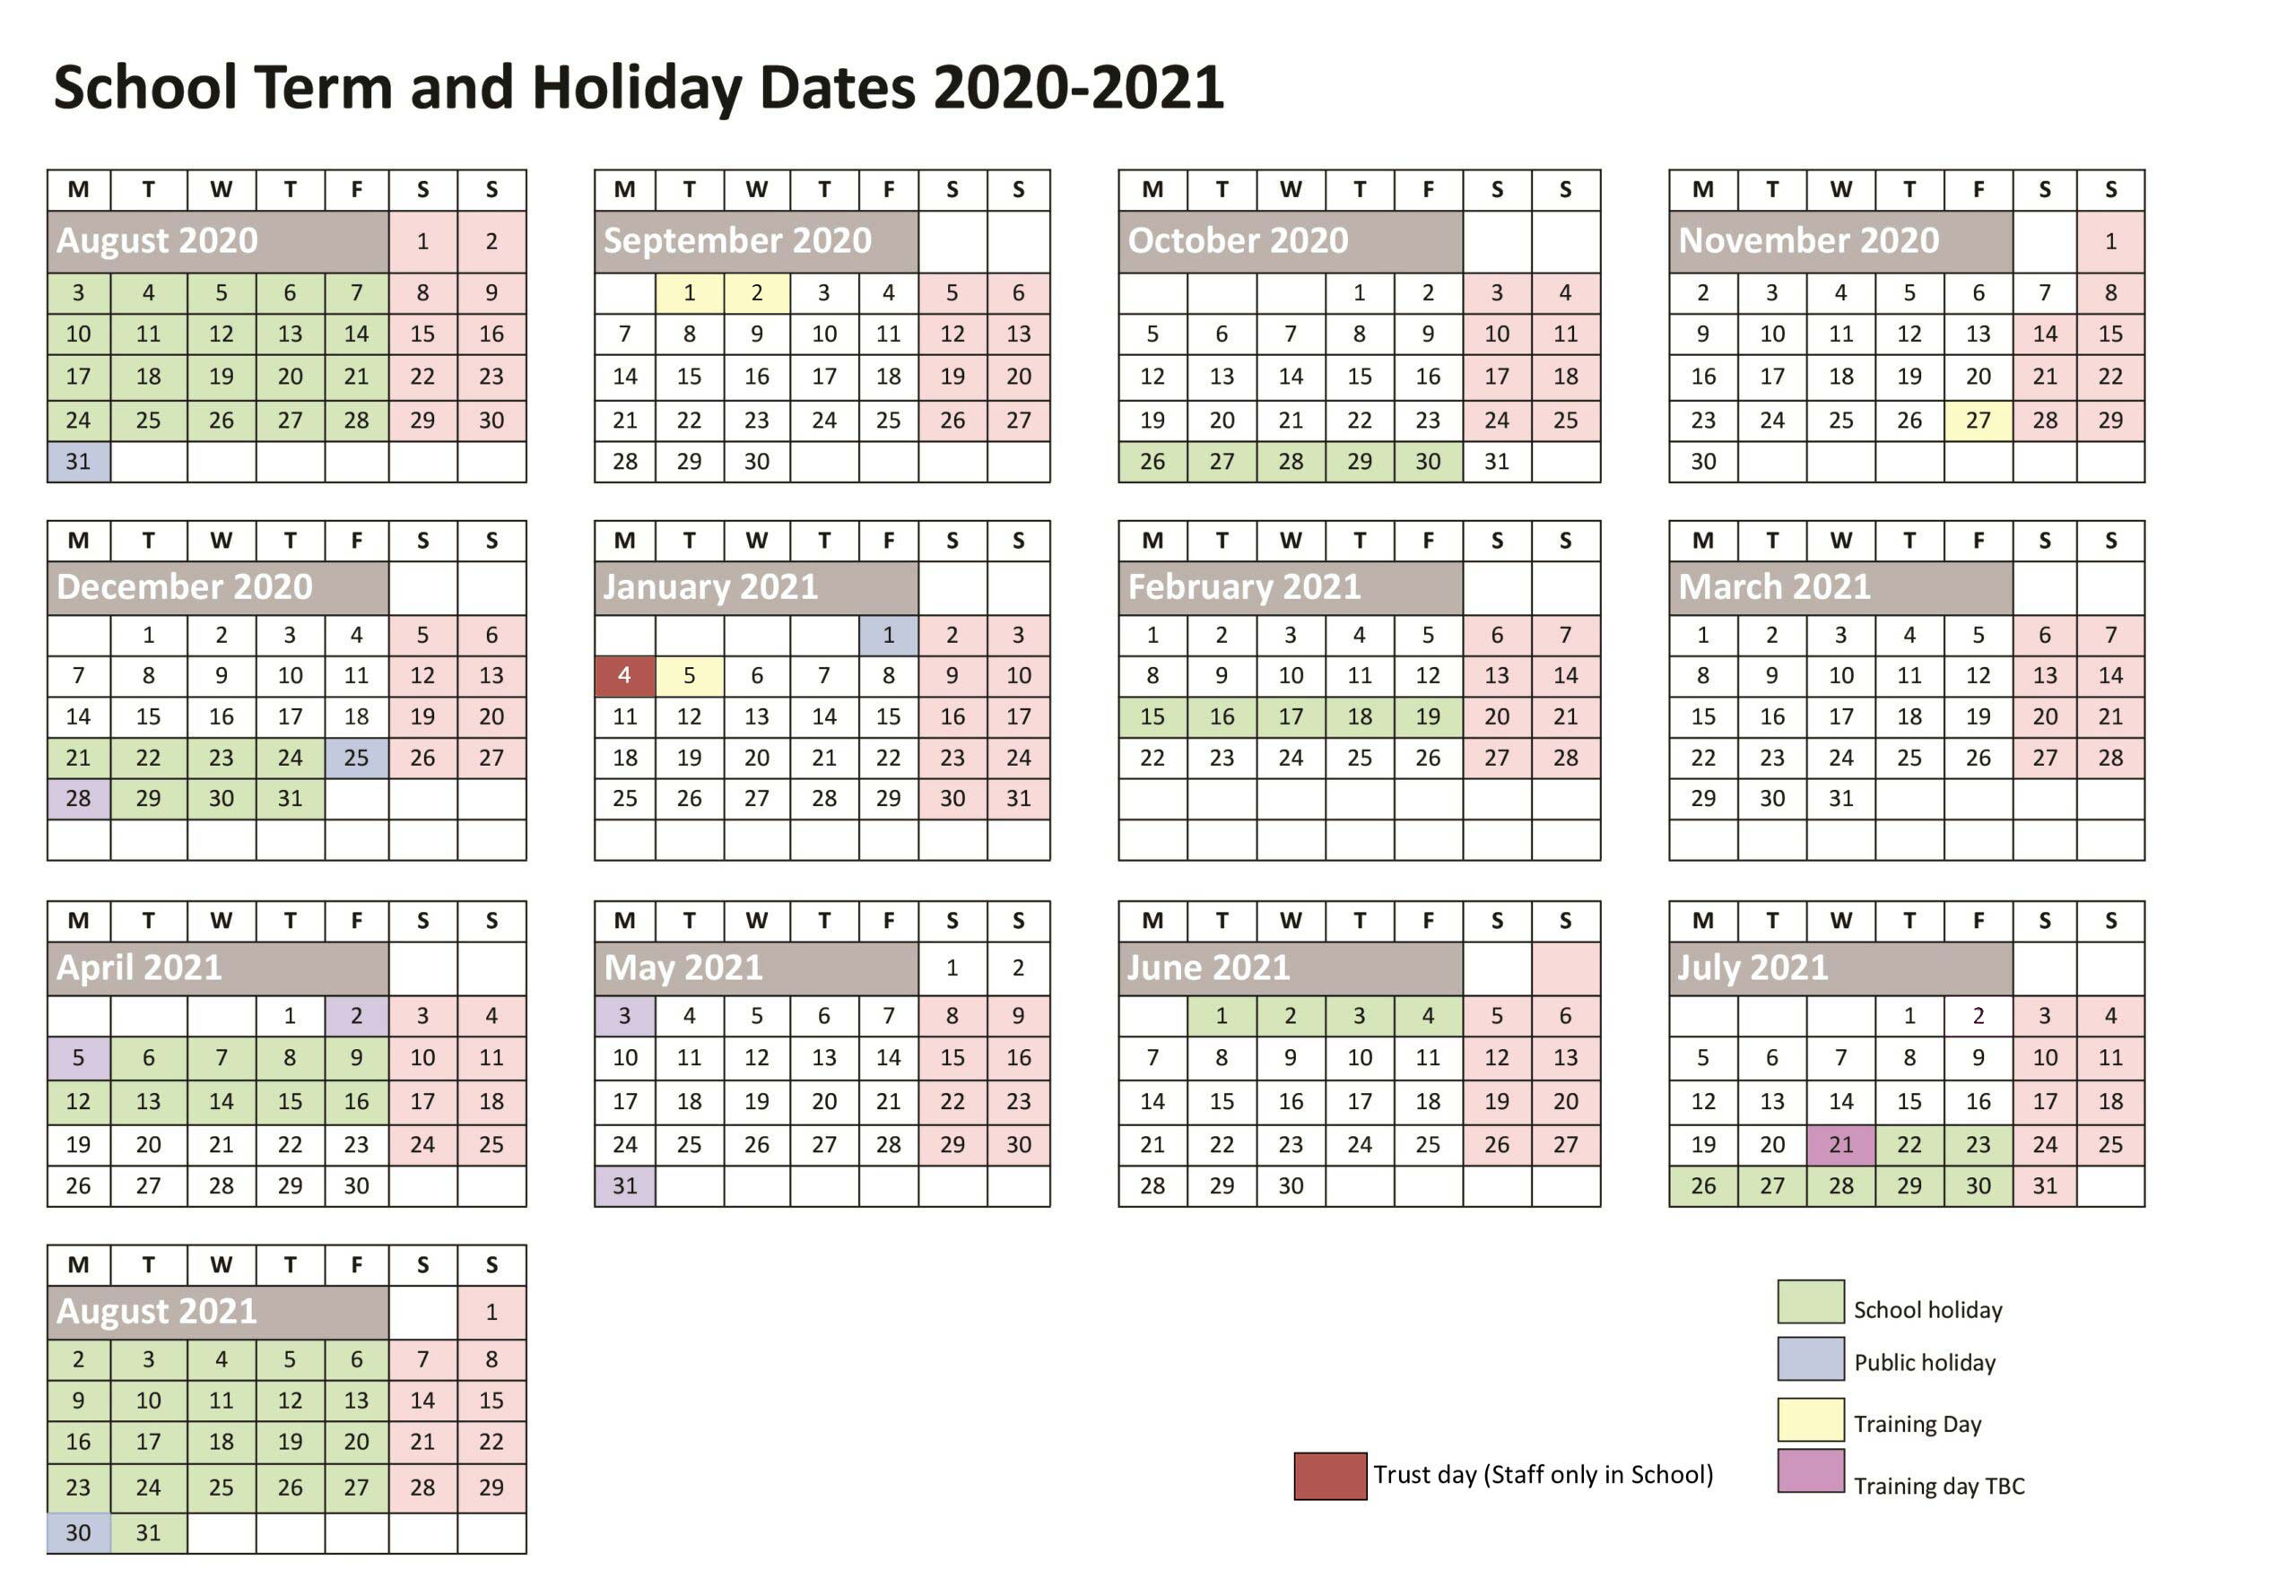 School-Term-Holiday-Dates-2020-Bloxwich-Academy-scaled-2